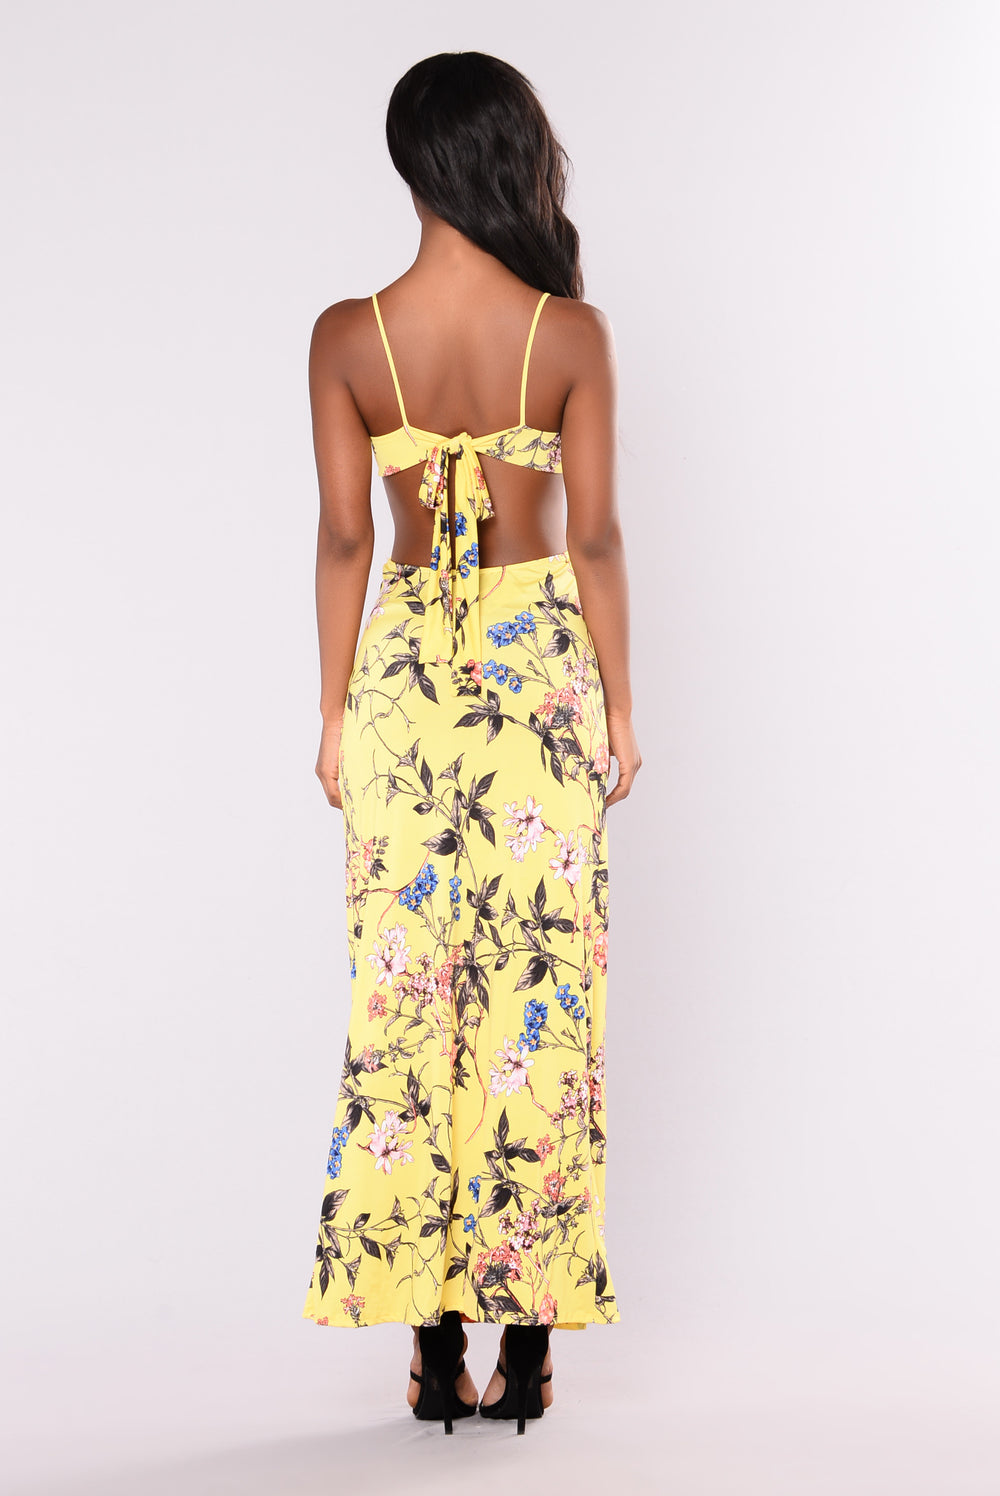 Cici's Maxi Dress - Yellow/Floral